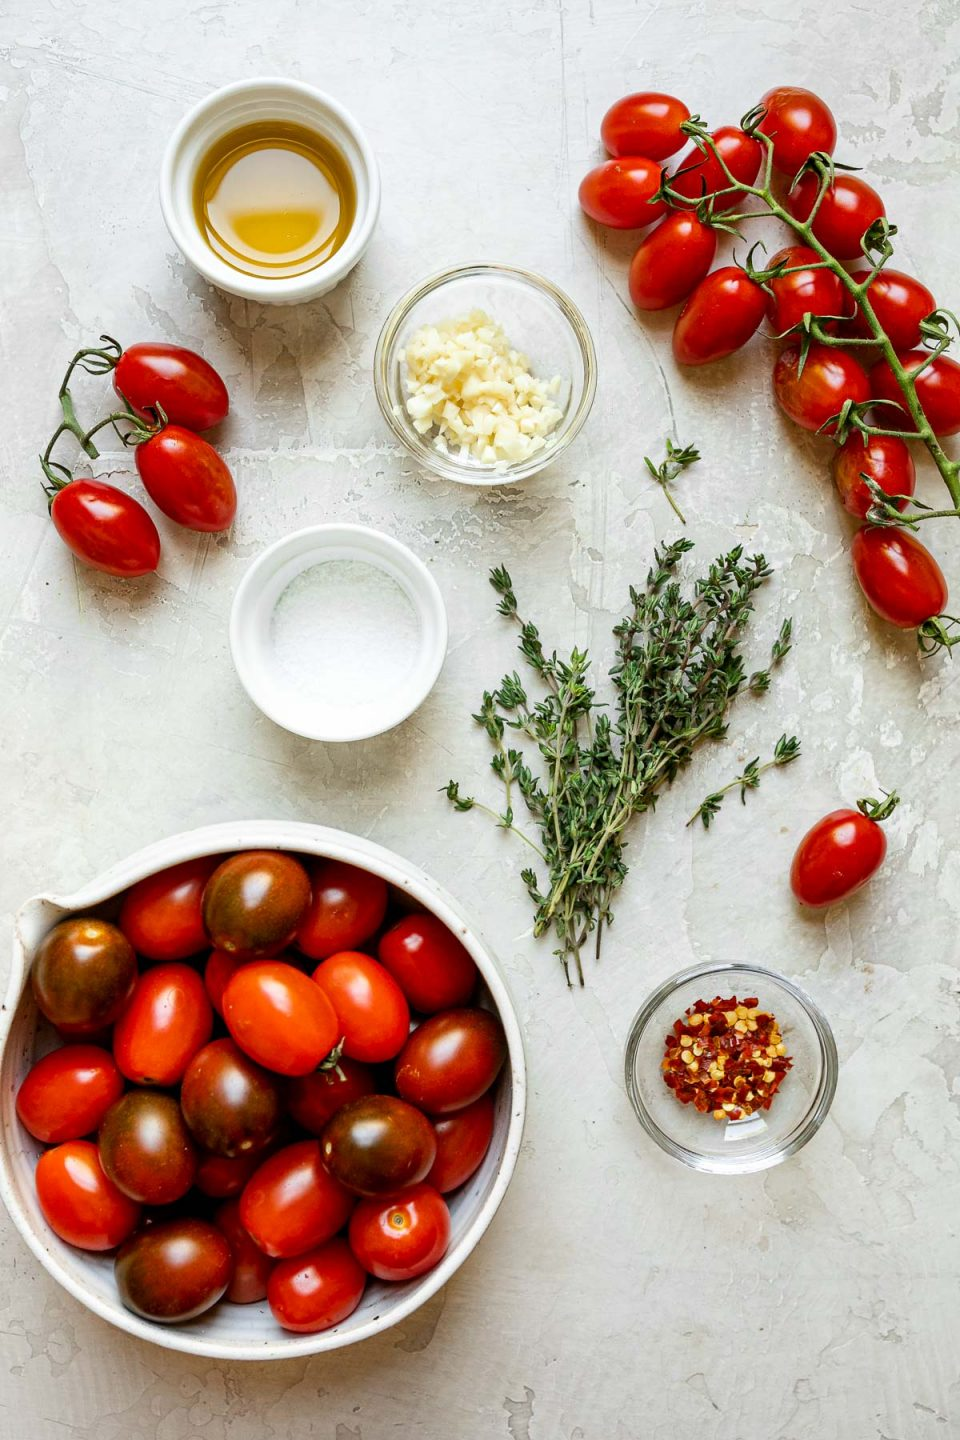 Slow roasted cherry tomatoes ingredients on a white textured surface: cherry tomatoes, olive oil, kosher salt, minced garlic, fresh herbs, & red pepper flakes.